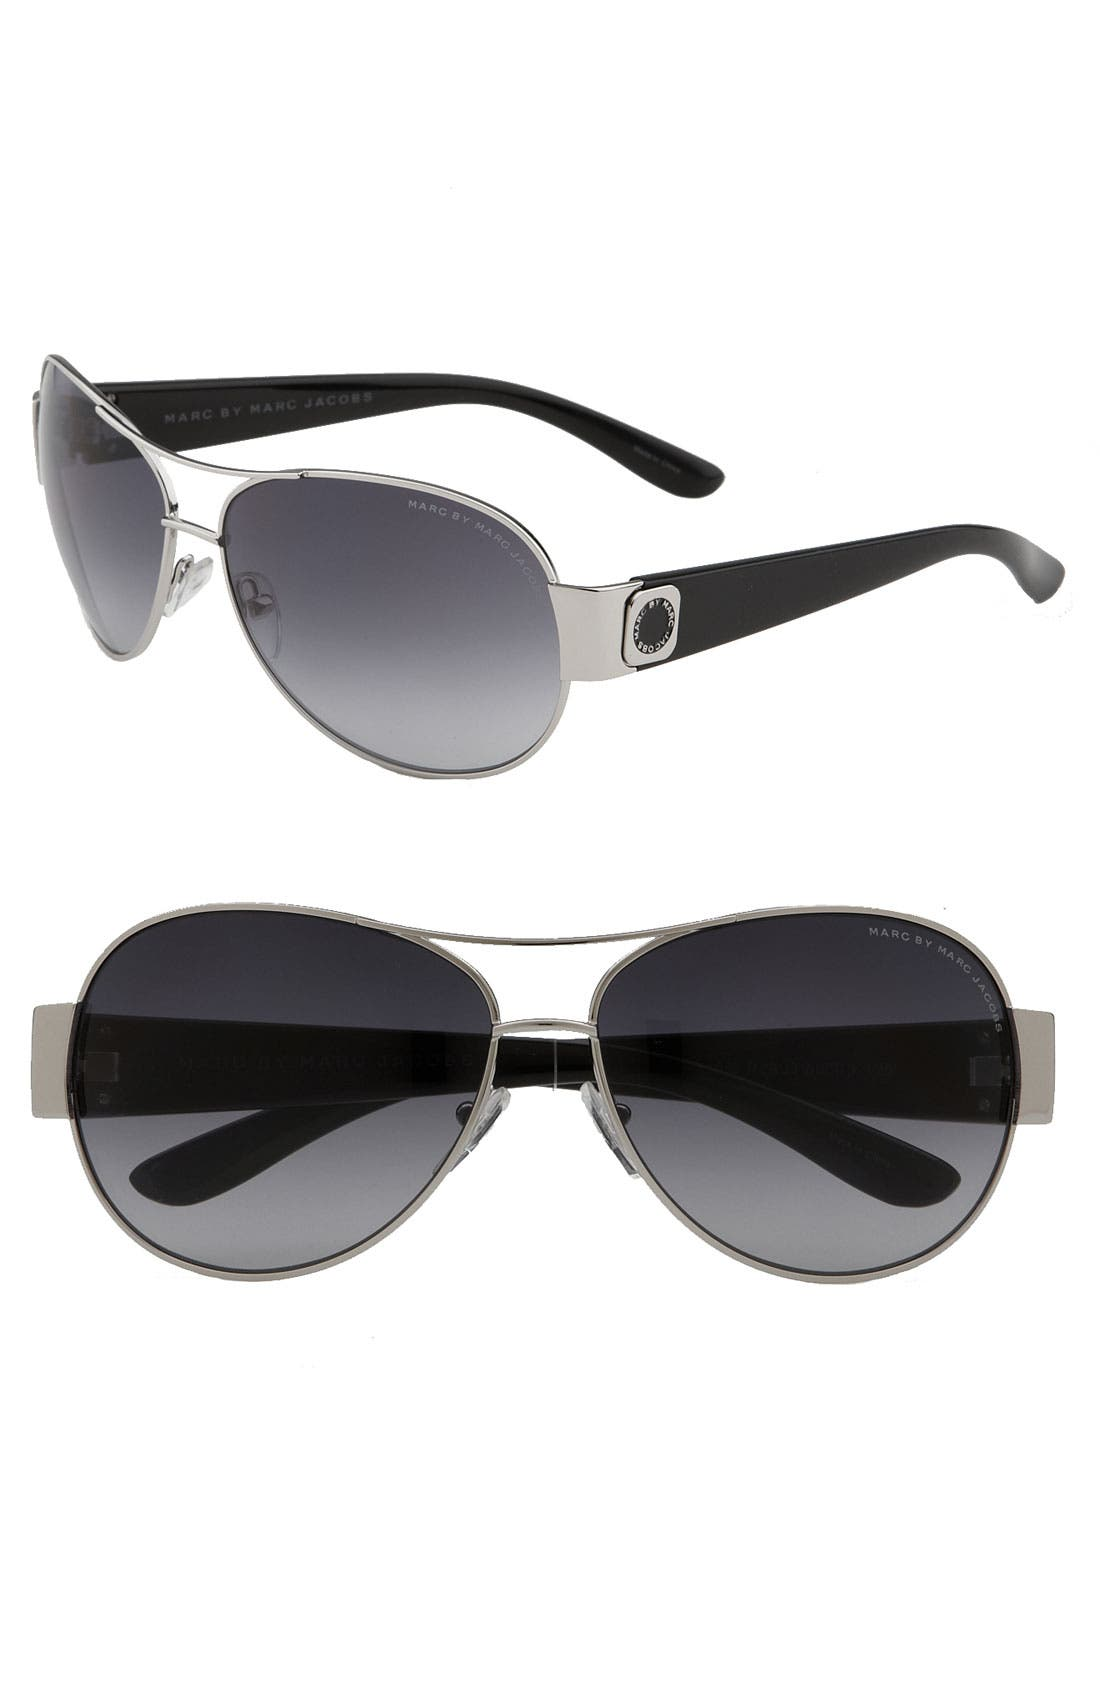 Main Image - MARC BY MARC JACOBS 60mm Metal Aviators with Resin Temples